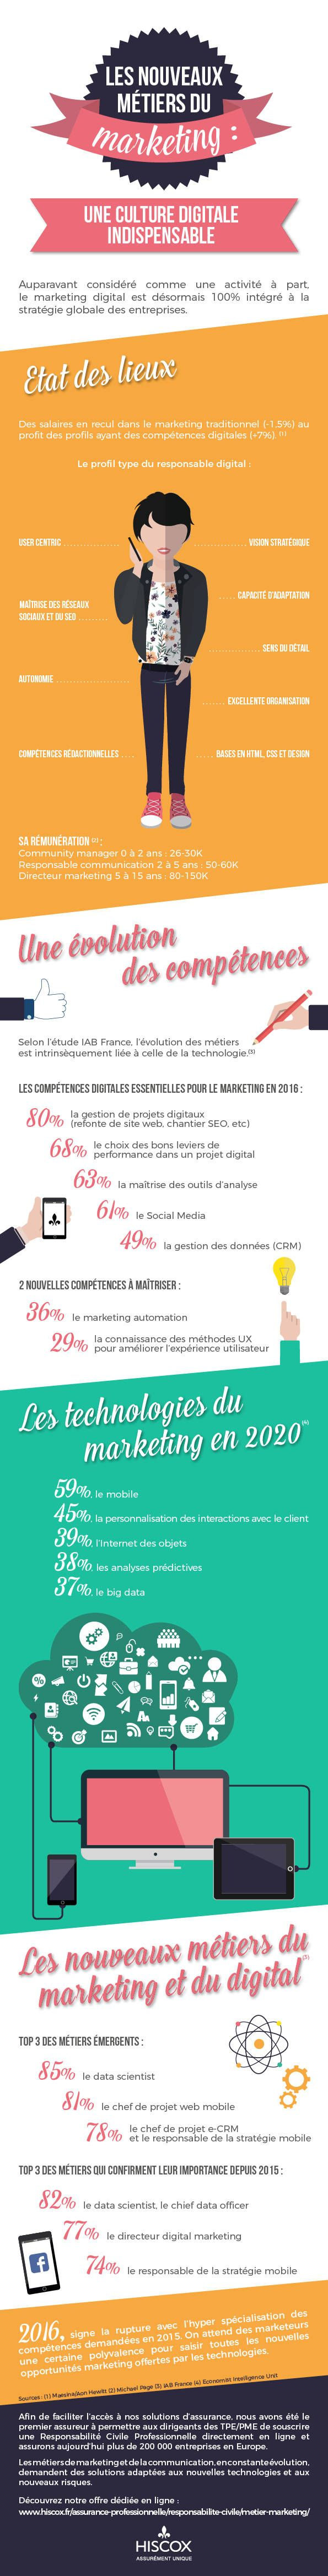 Une solide culture digitale est devenu indispensable à tous les professionnels du marketing